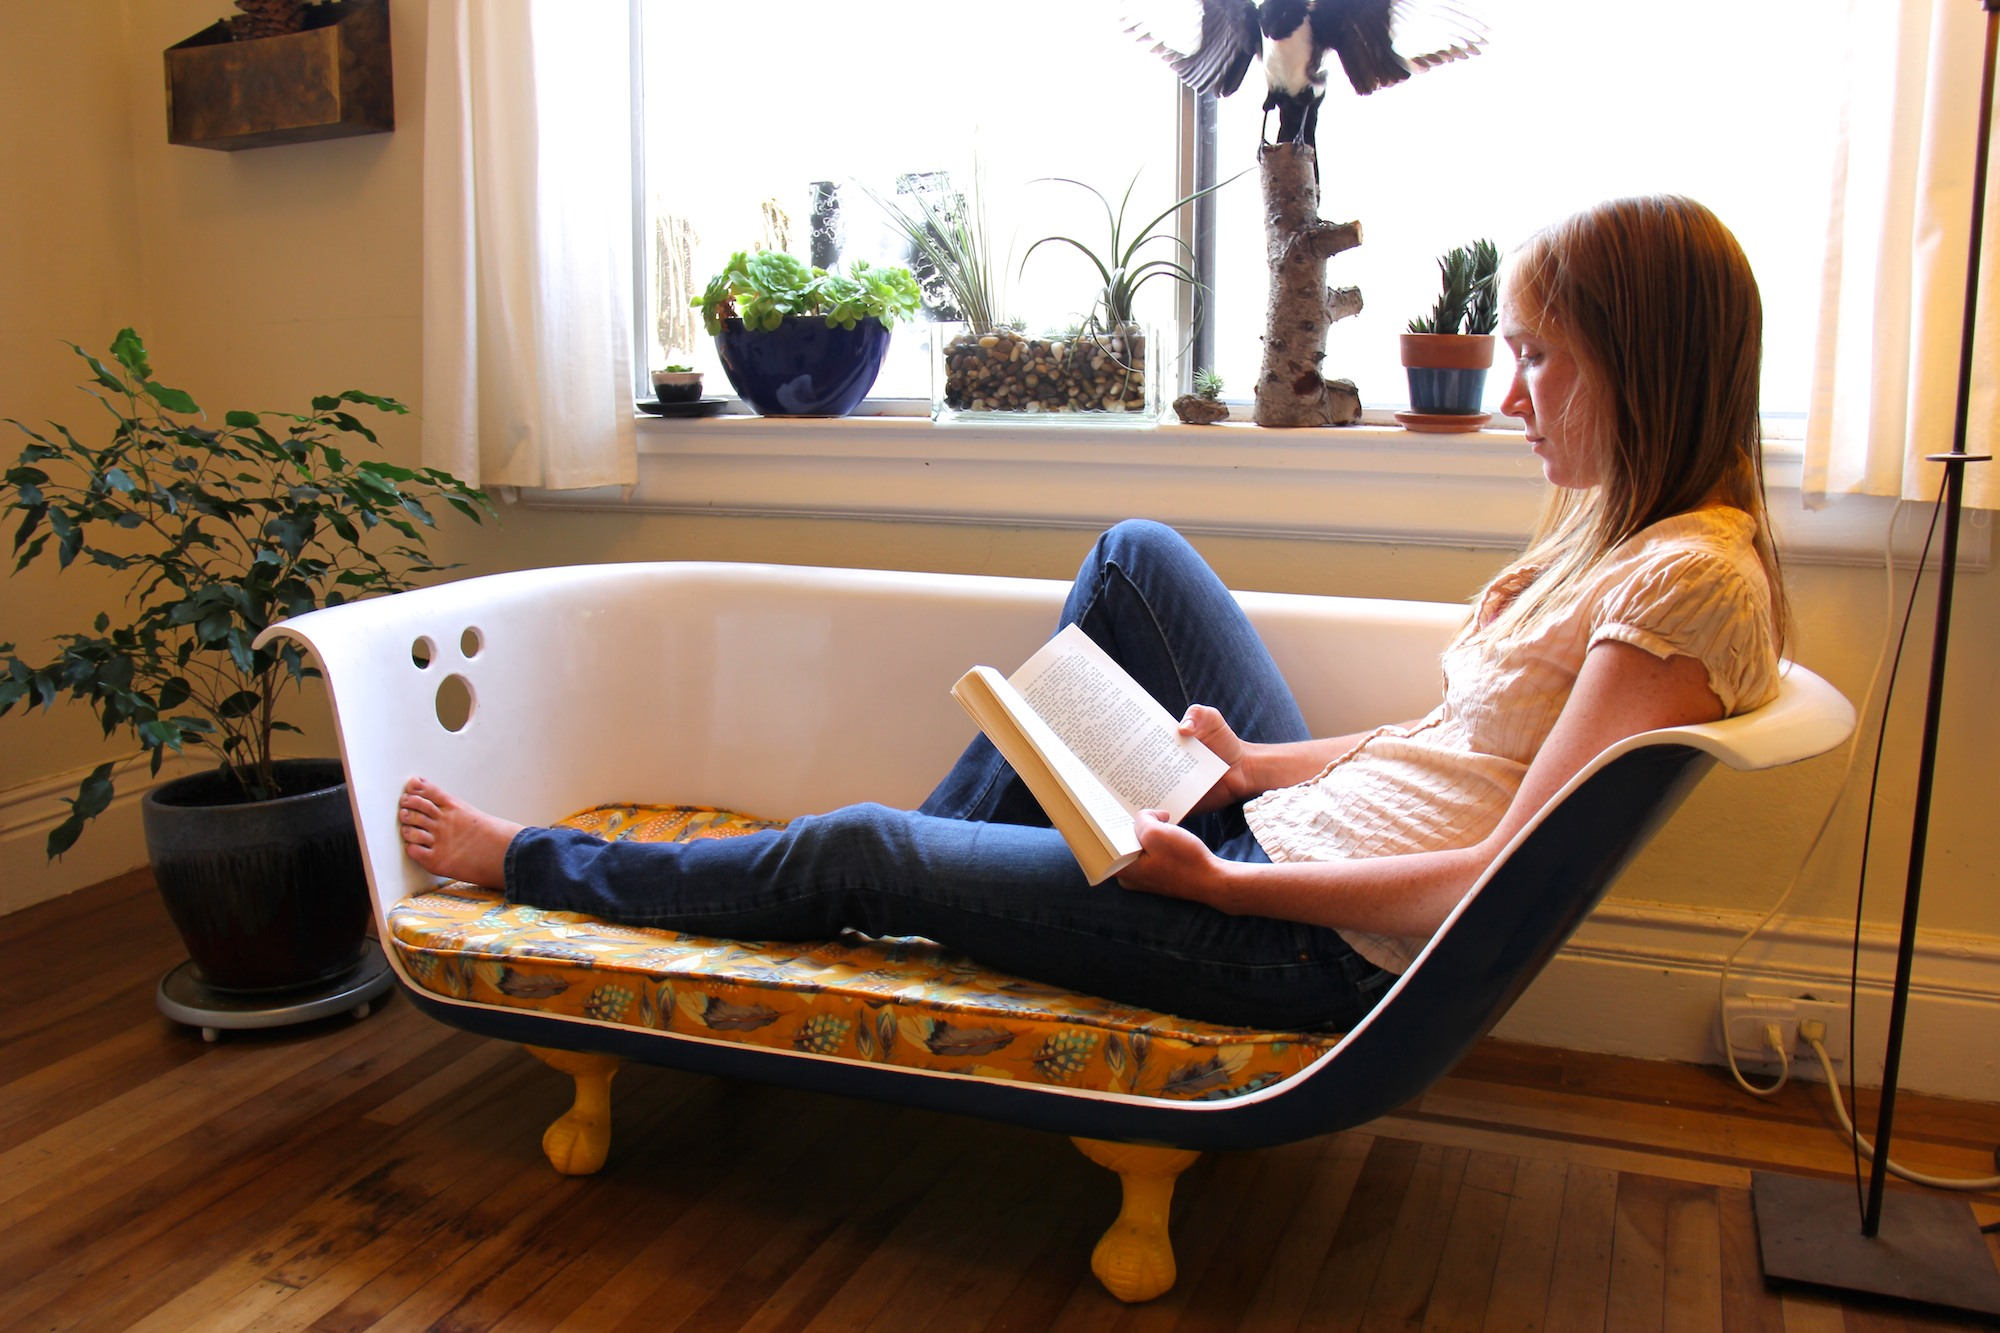 DIY Clawfoot Bathtub Couch: 34 Steps (with Pictures)